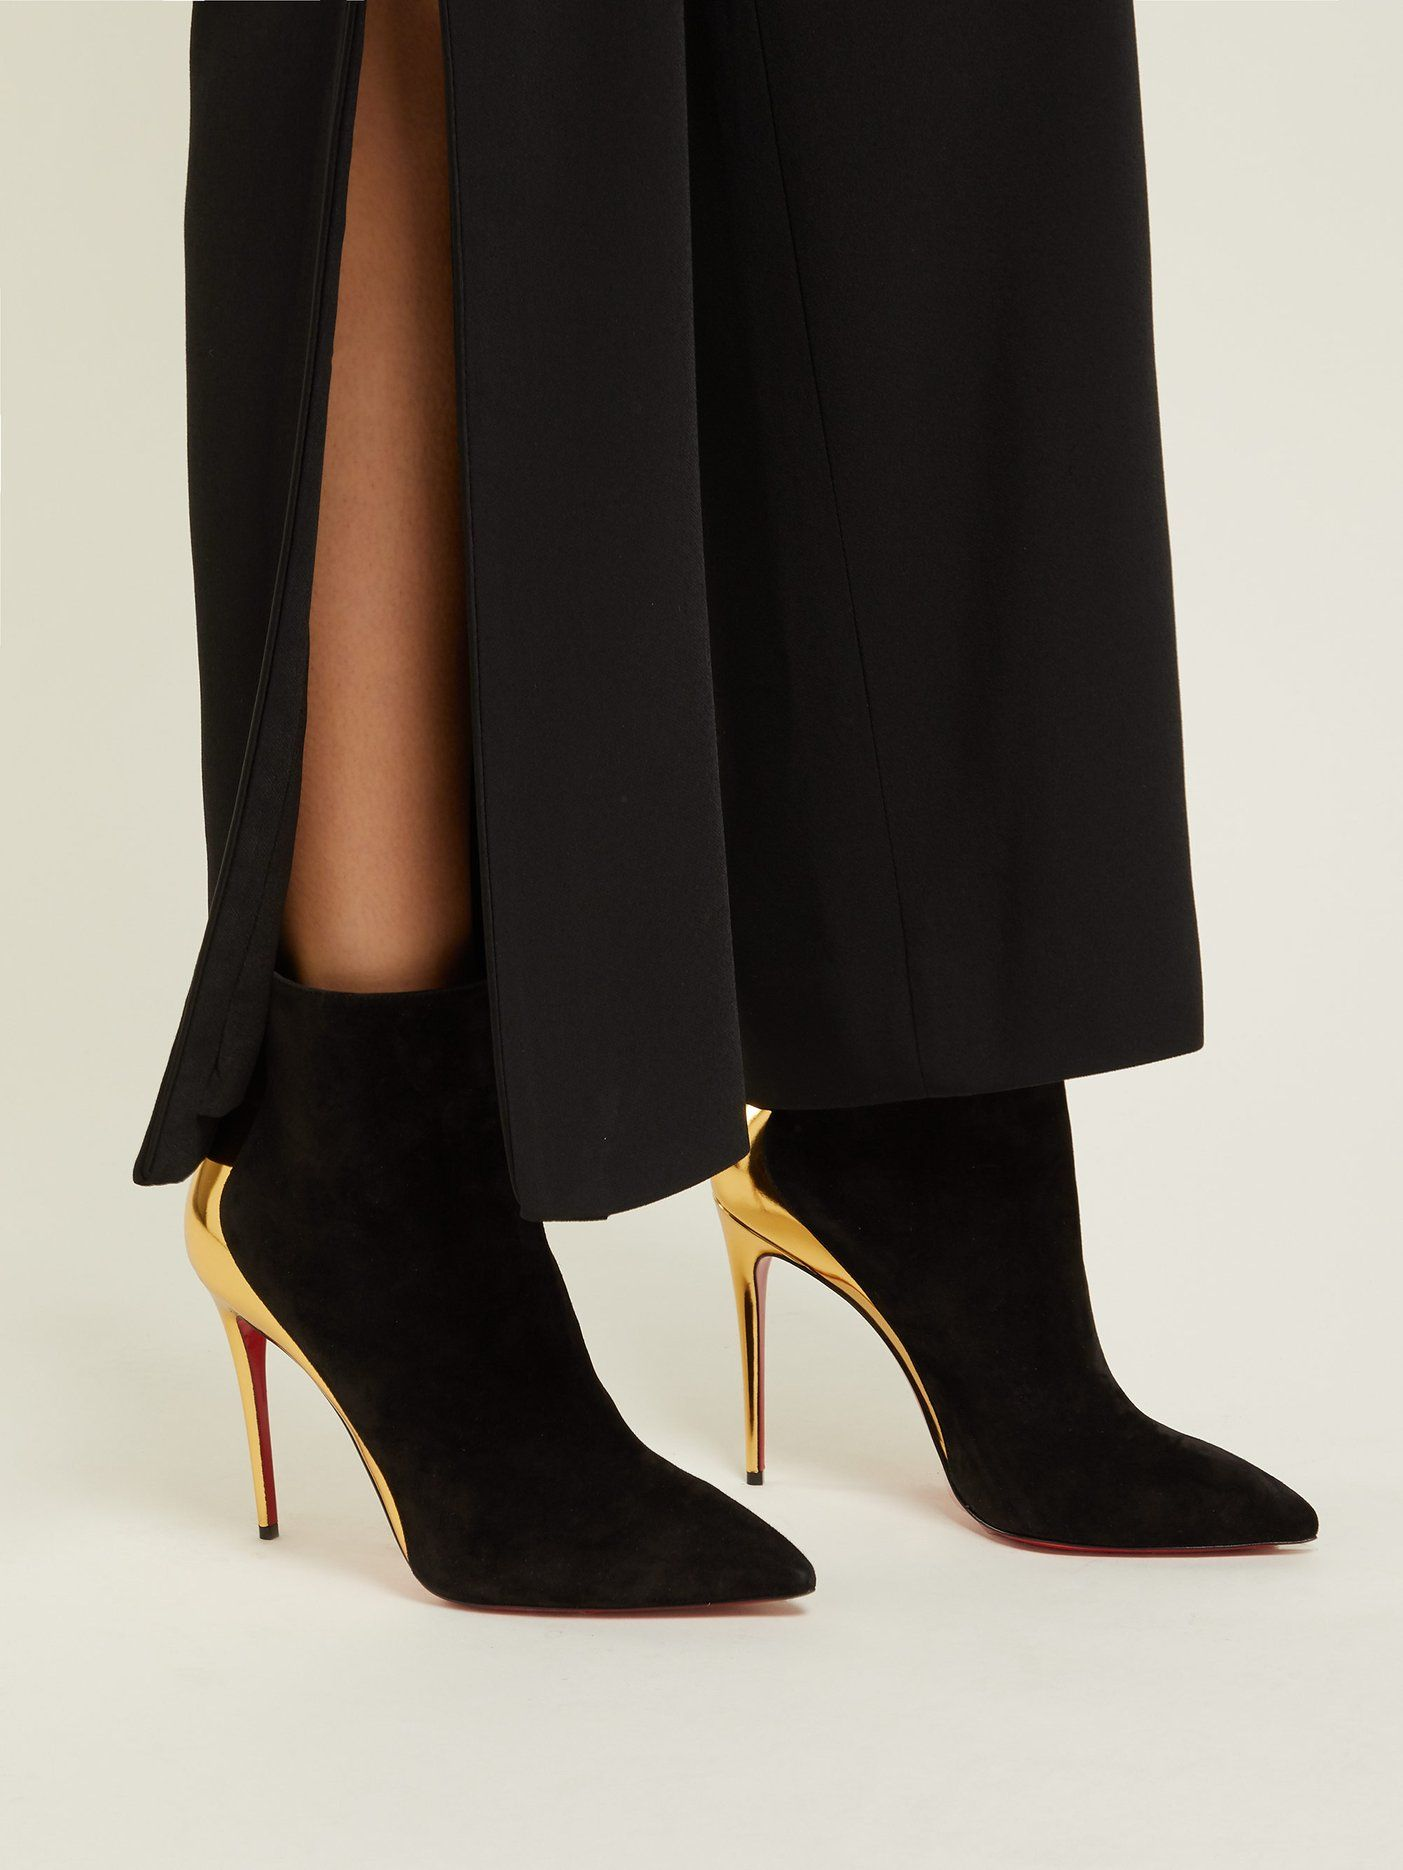 61790d921922 Delicotte 100 suede and leather ankle boots